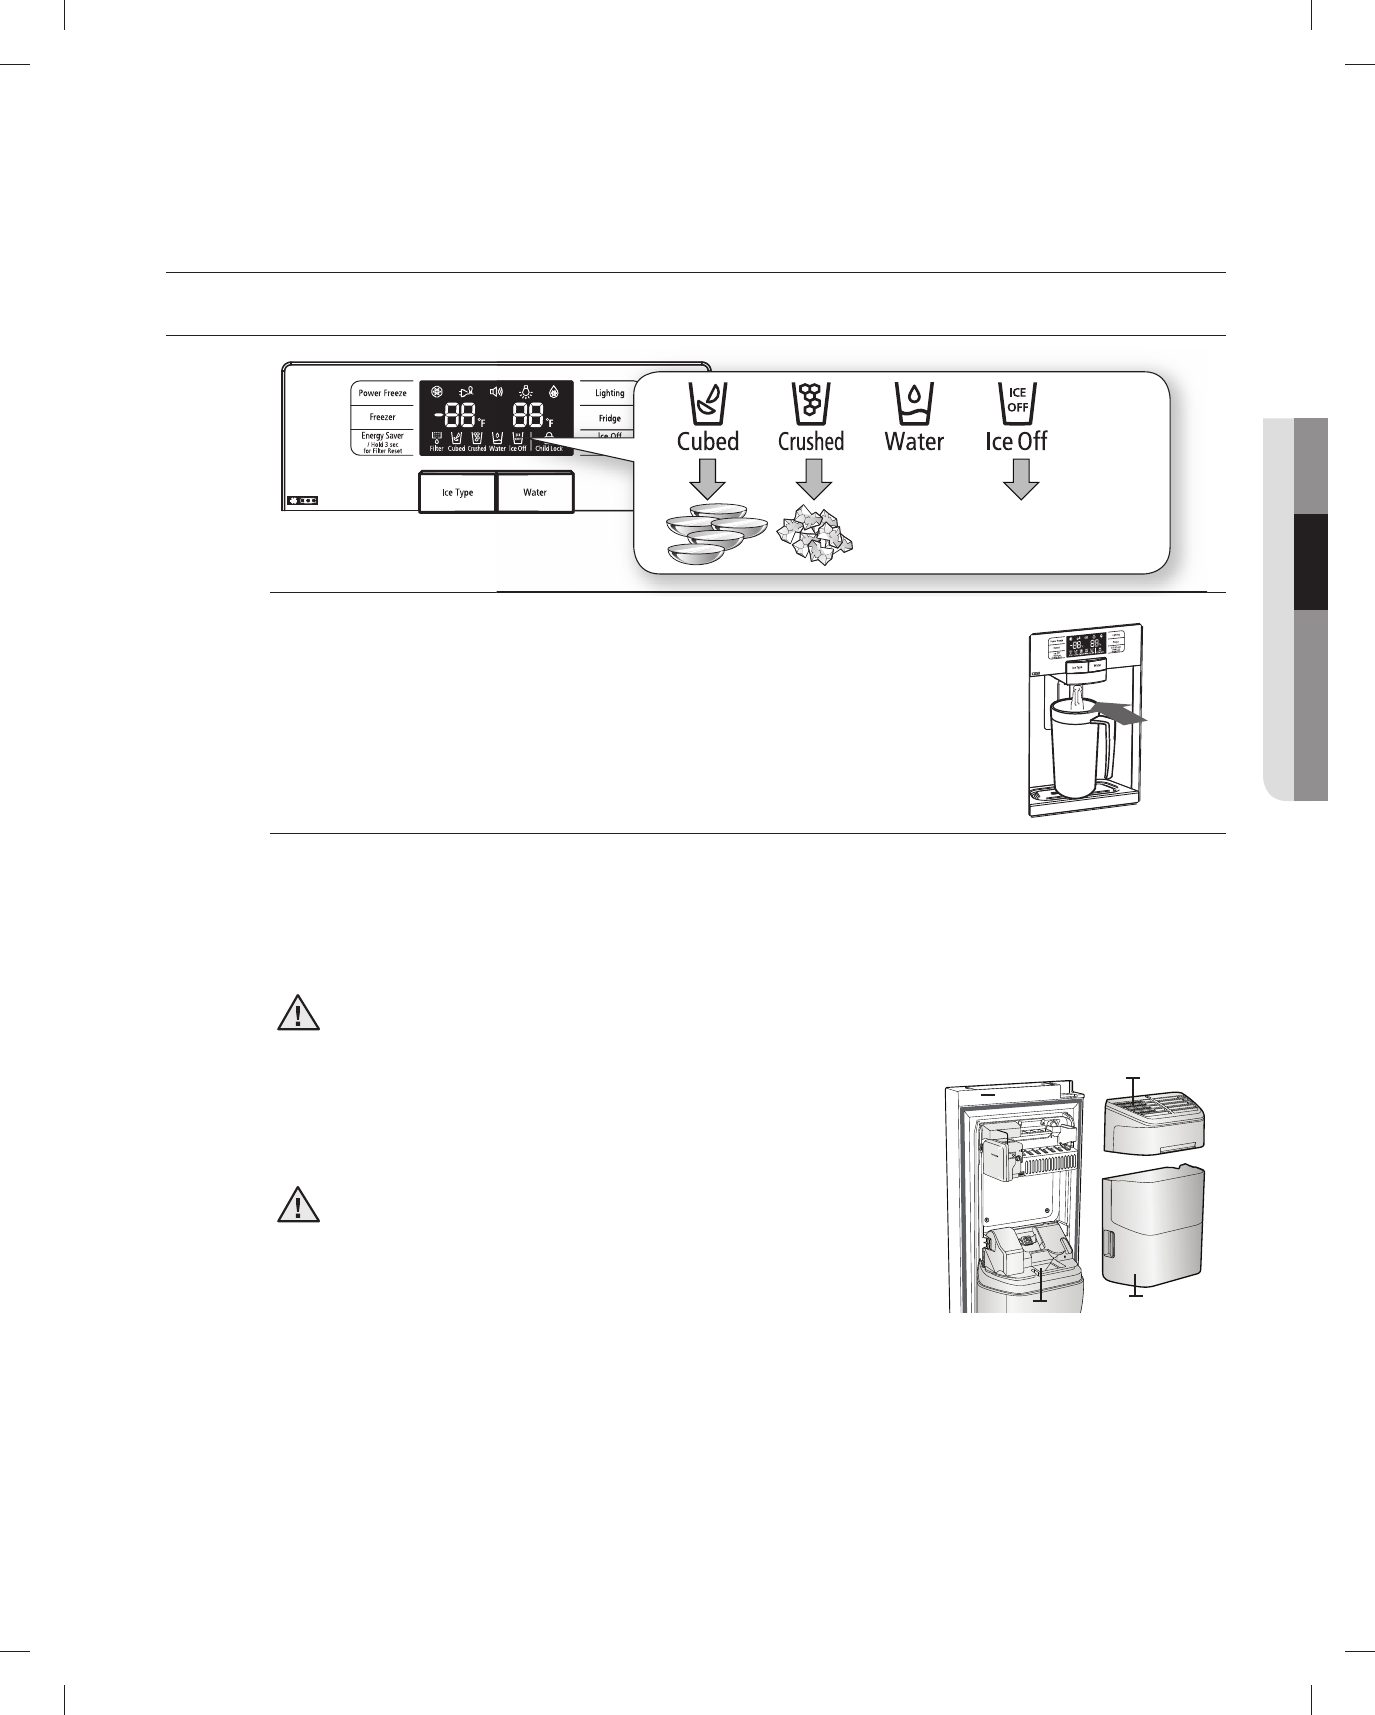 page 21 of samsung refrigerator rsg257aars user guide rh kitchen manualsonline com Samsung RSG257 Manualm Operators Manual Samsung RSG257 Manualm Operators Manual